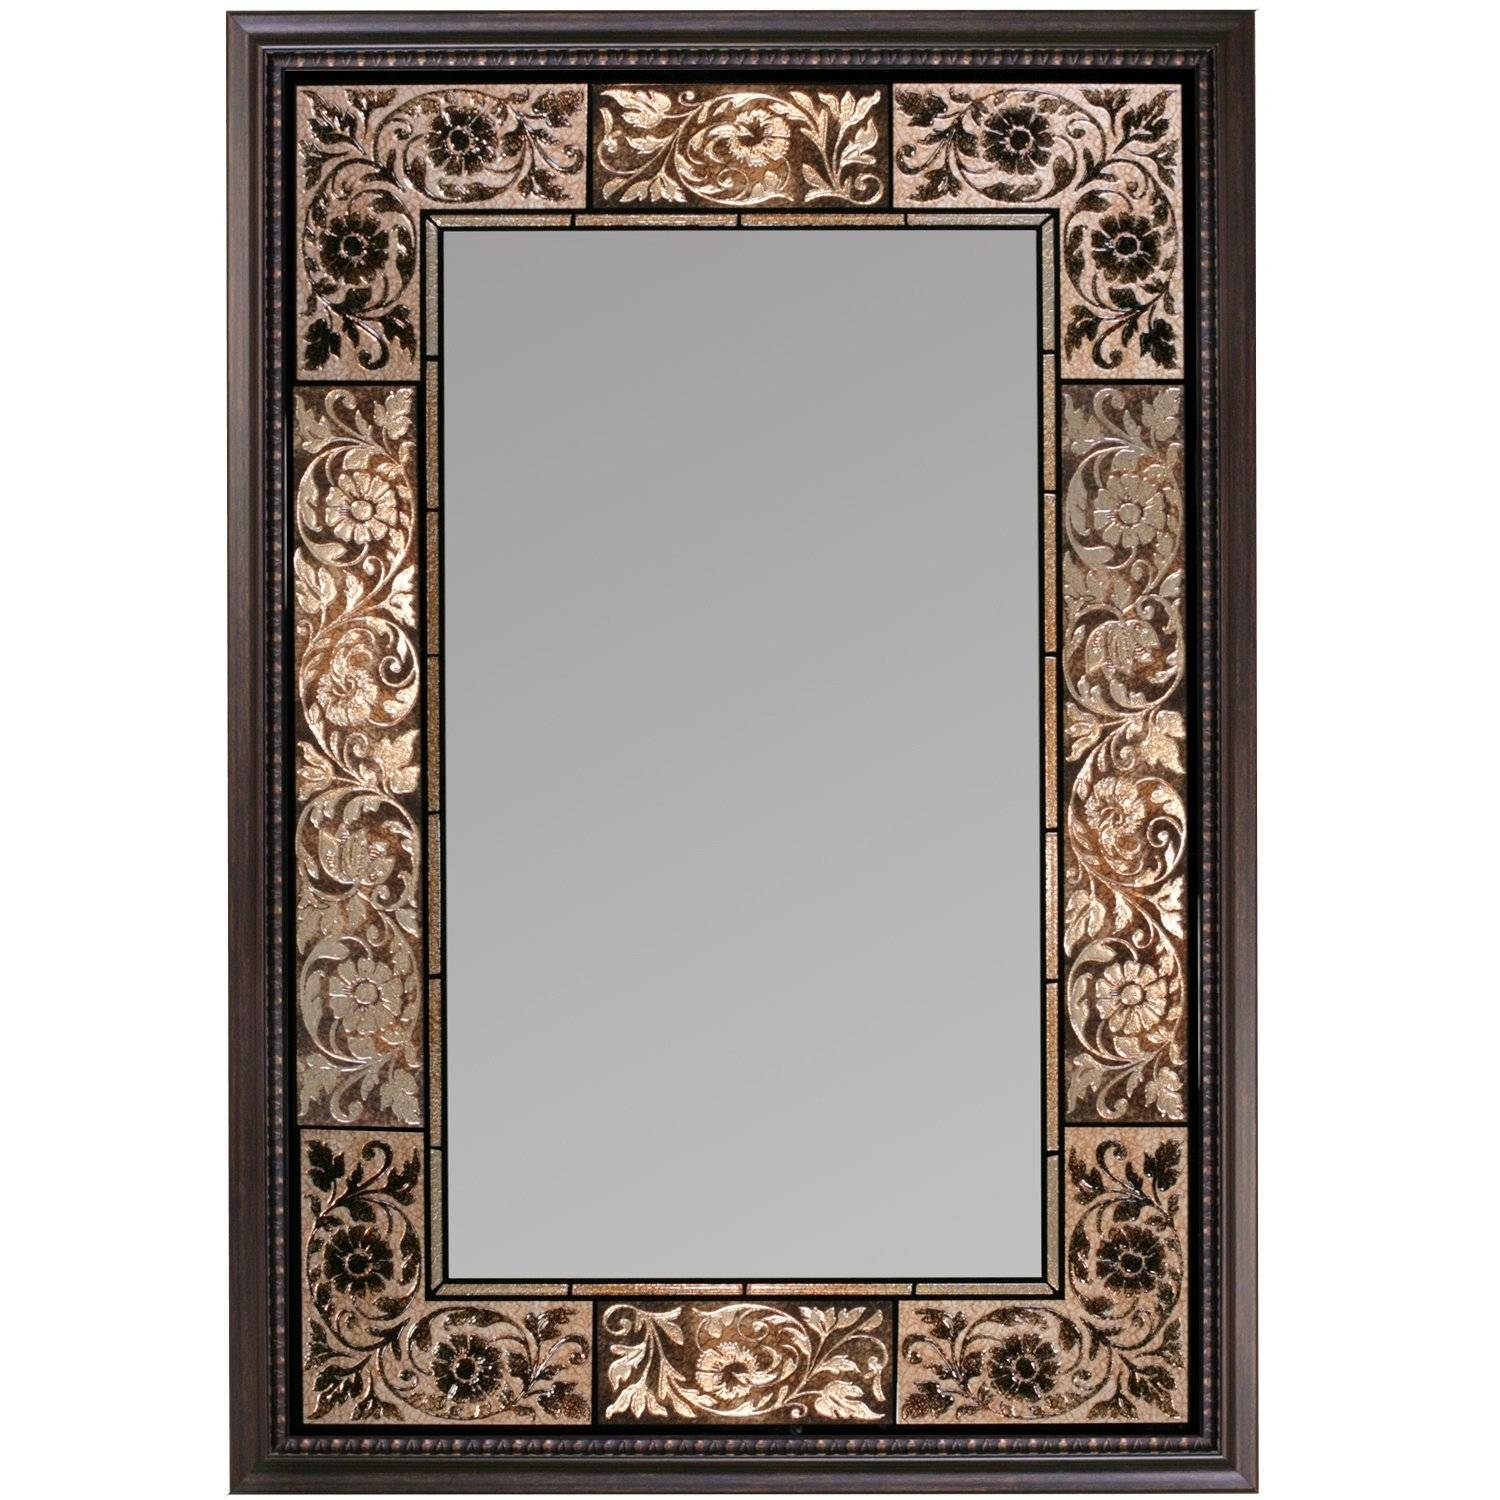 Bathroom Ideas. Luxury Bronze Floral Decorative Tiled Framed in Large Bronze Mirrors (Image 3 of 15)